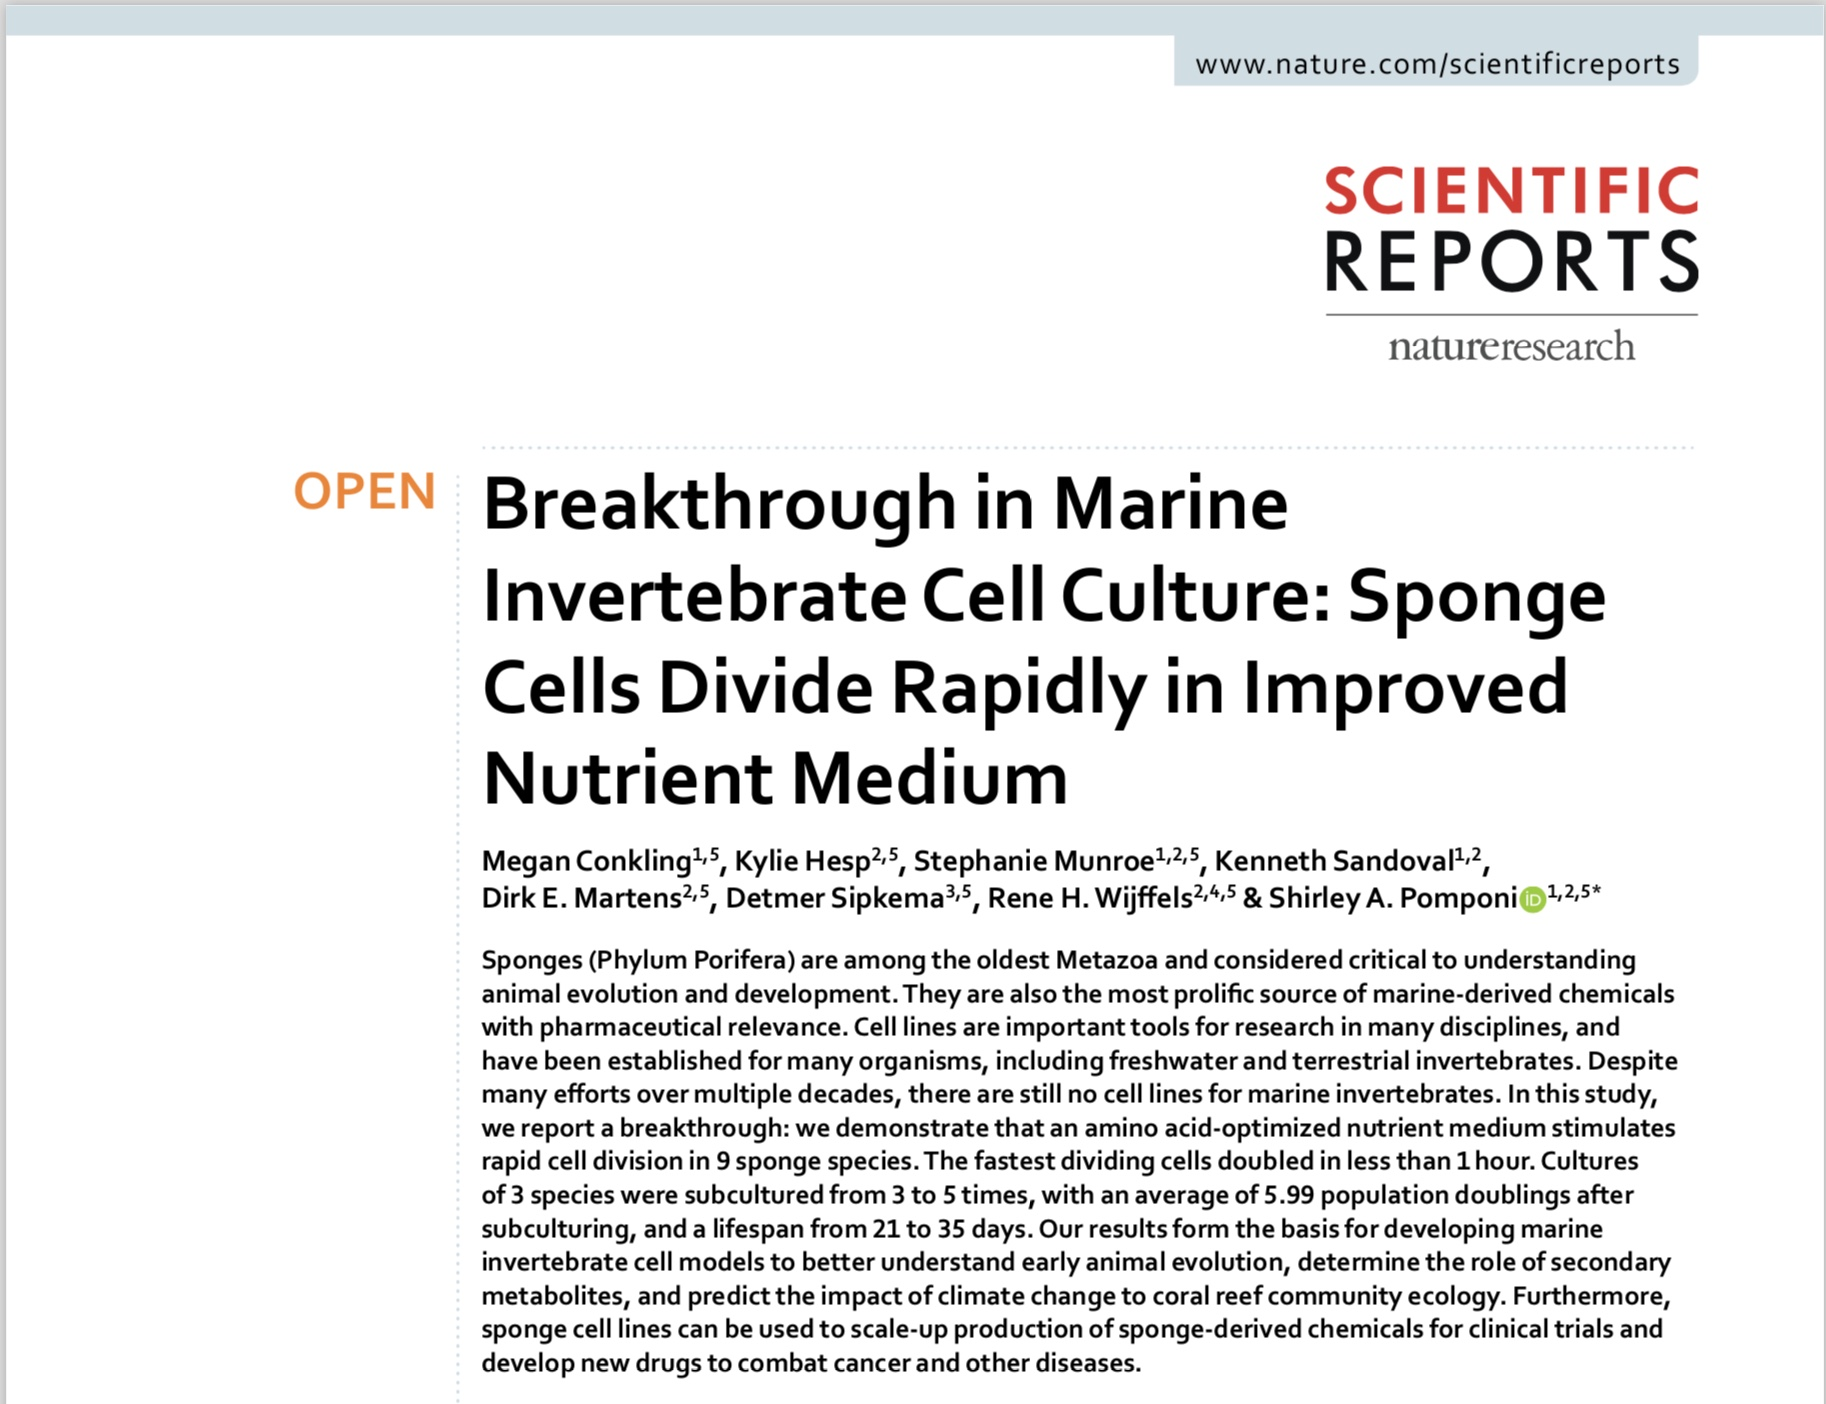 Abstract of the paper Breakthrough in marine invertebrate cell culture: Sponge cells divide rapidly in improvednutrient medium